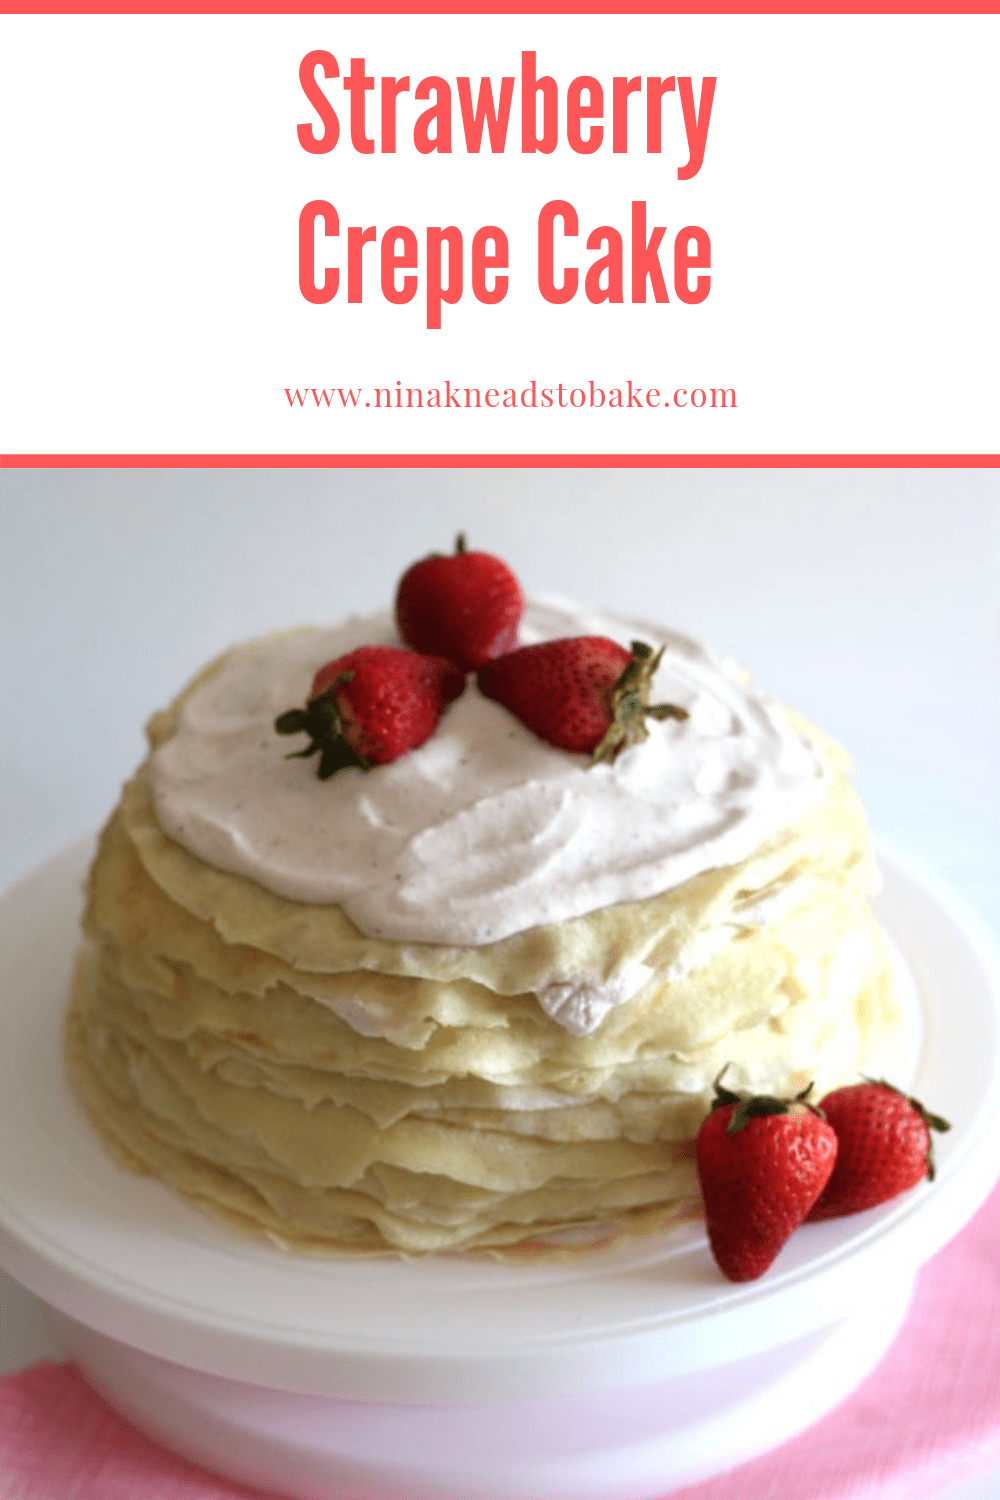 A strawberry crepe cake on a cake stand.